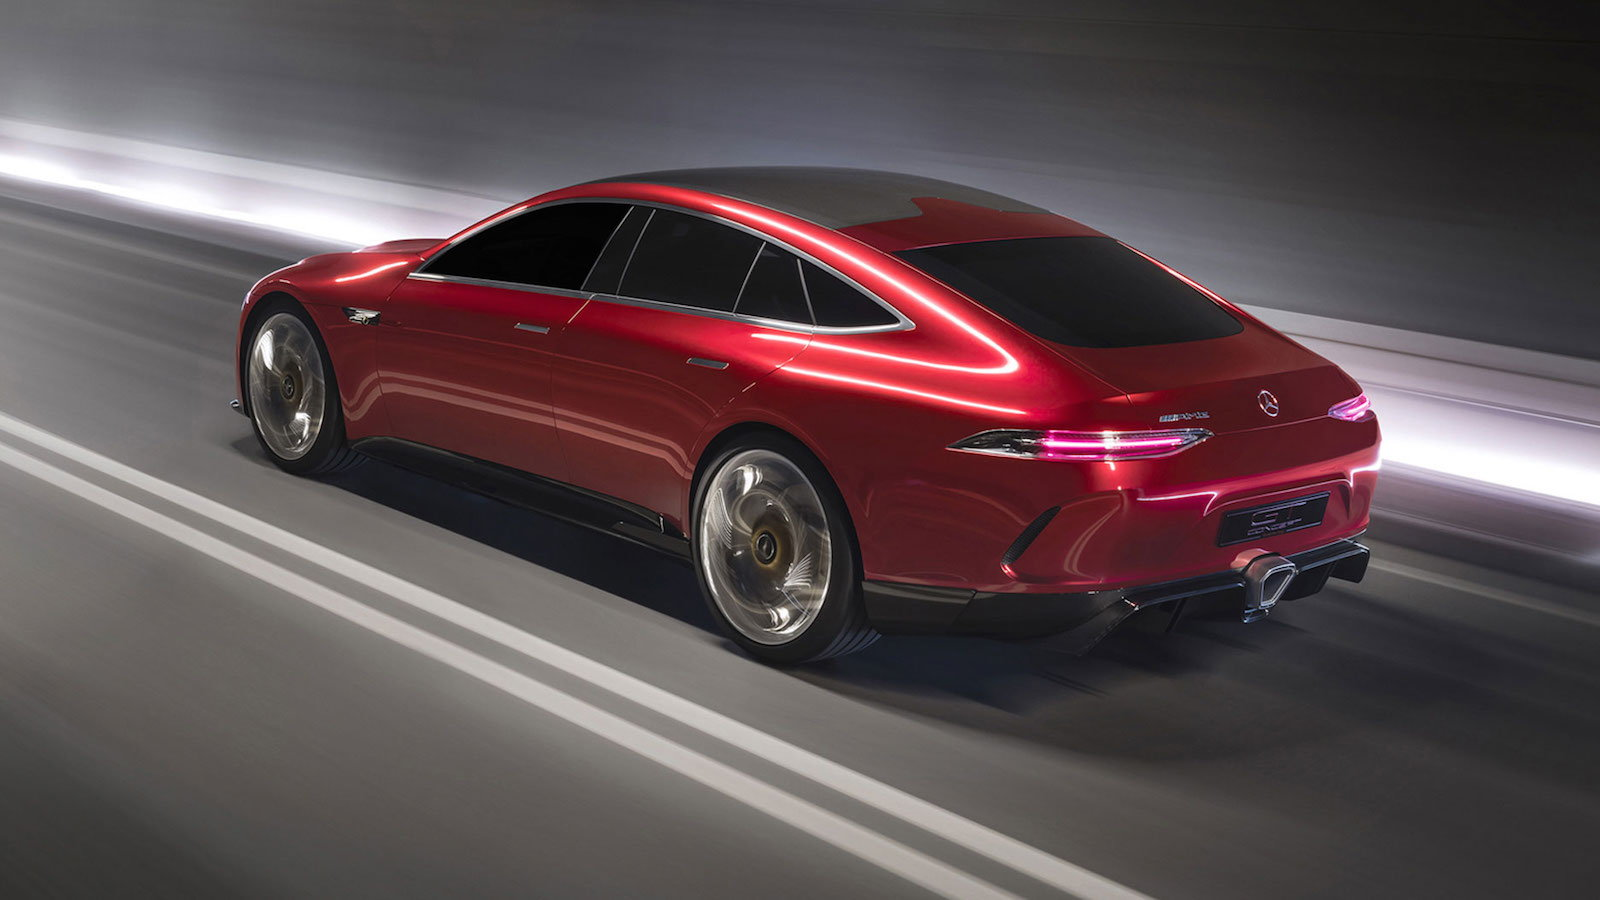 Check out the 805HP AMG GT Concept!